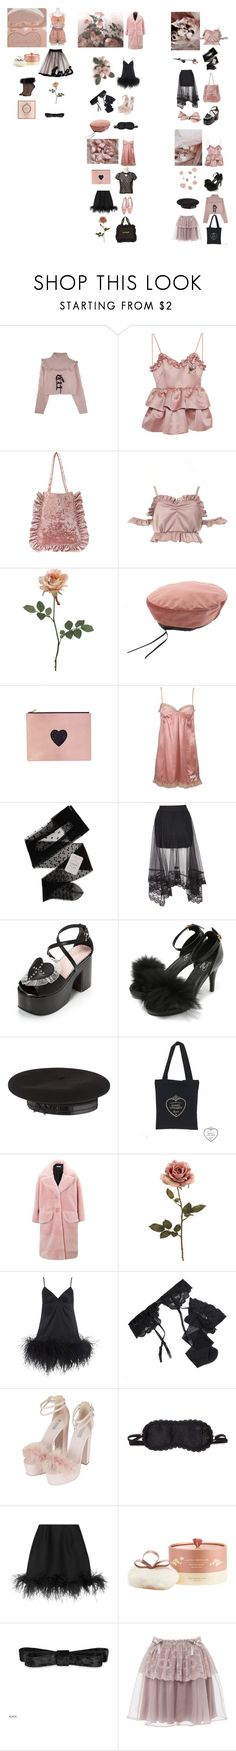 """""""Untitled #131"""" by bubblegumbae ❤ liked on Polyvore featuring VIVETTA, La Vie en Rose, Odd Molly, Gerbe, Yves Saint Laurent, Myla, Reger by Janet Reger, Topshop, L'Agent By Agent Provocateur and Lanvin"""